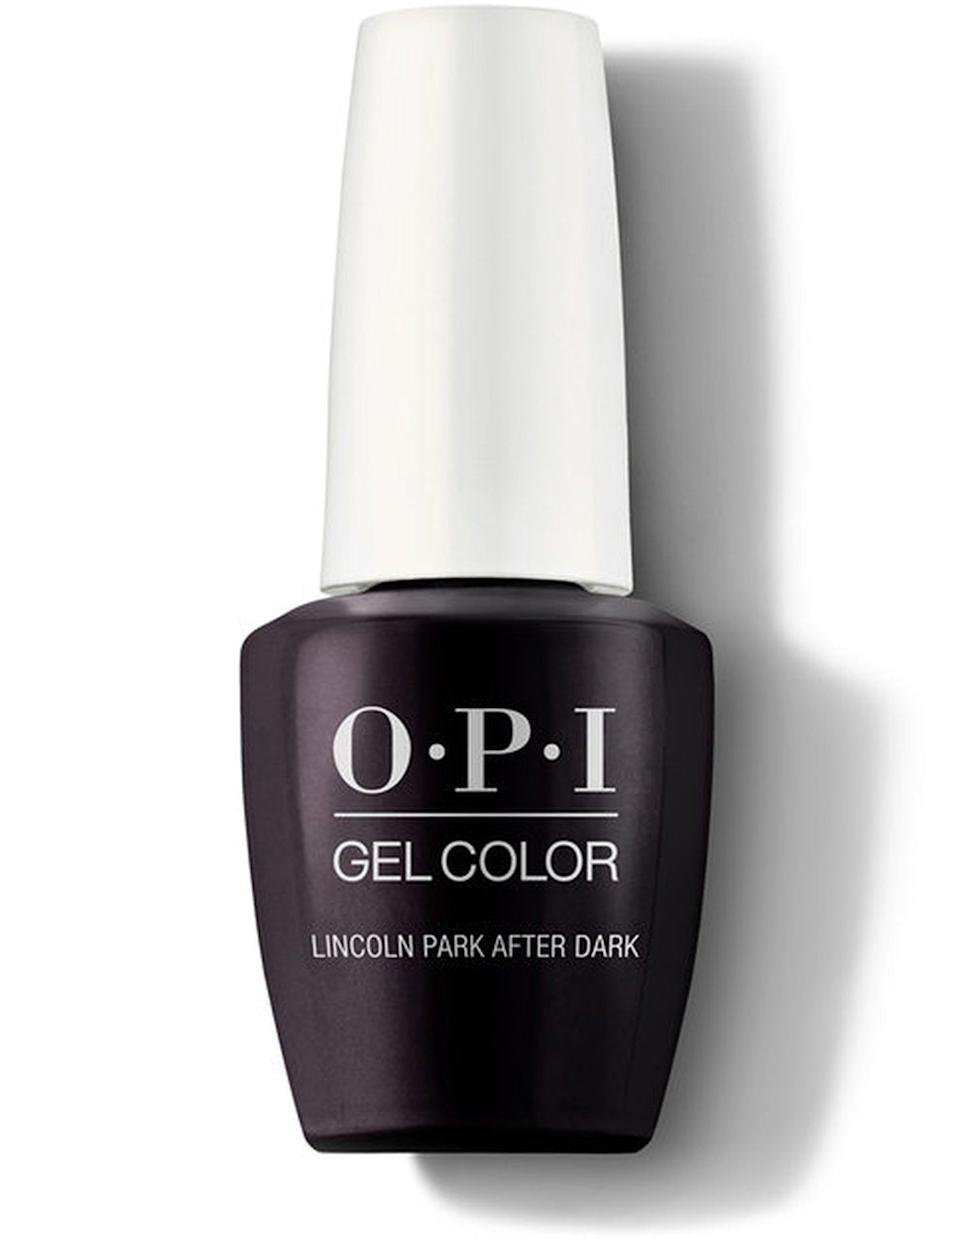 "<h3>OPI Lincoln Park After Dark</h3><br>Where midnight meets dark purple is where you'll find <a href=""https://www.refinery29.com/en-us/best-opi-nail-polish-colors#slide-5"" rel=""nofollow noopener"" target=""_blank"" data-ylk=""slk:OPI's Lincoln Park After Dark"" class=""link rapid-noclick-resp"">OPI's Lincoln Park After Dark</a>, a not-quite-black shade of aubergine. It's a salon staple and nearly every nail artist we've interviewed has a bottle on hand.<br><br><strong>OPI</strong> OPI Lincoln Park After Dark, $, available at <a href=""https://go.skimresources.com/?id=30283X879131&url=https%3A%2F%2Fwww.opi.com%2Fnail-products%2Fnail-polish%2Flincoln-park-after-dark"" rel=""nofollow noopener"" target=""_blank"" data-ylk=""slk:OPI"" class=""link rapid-noclick-resp"">OPI</a>"